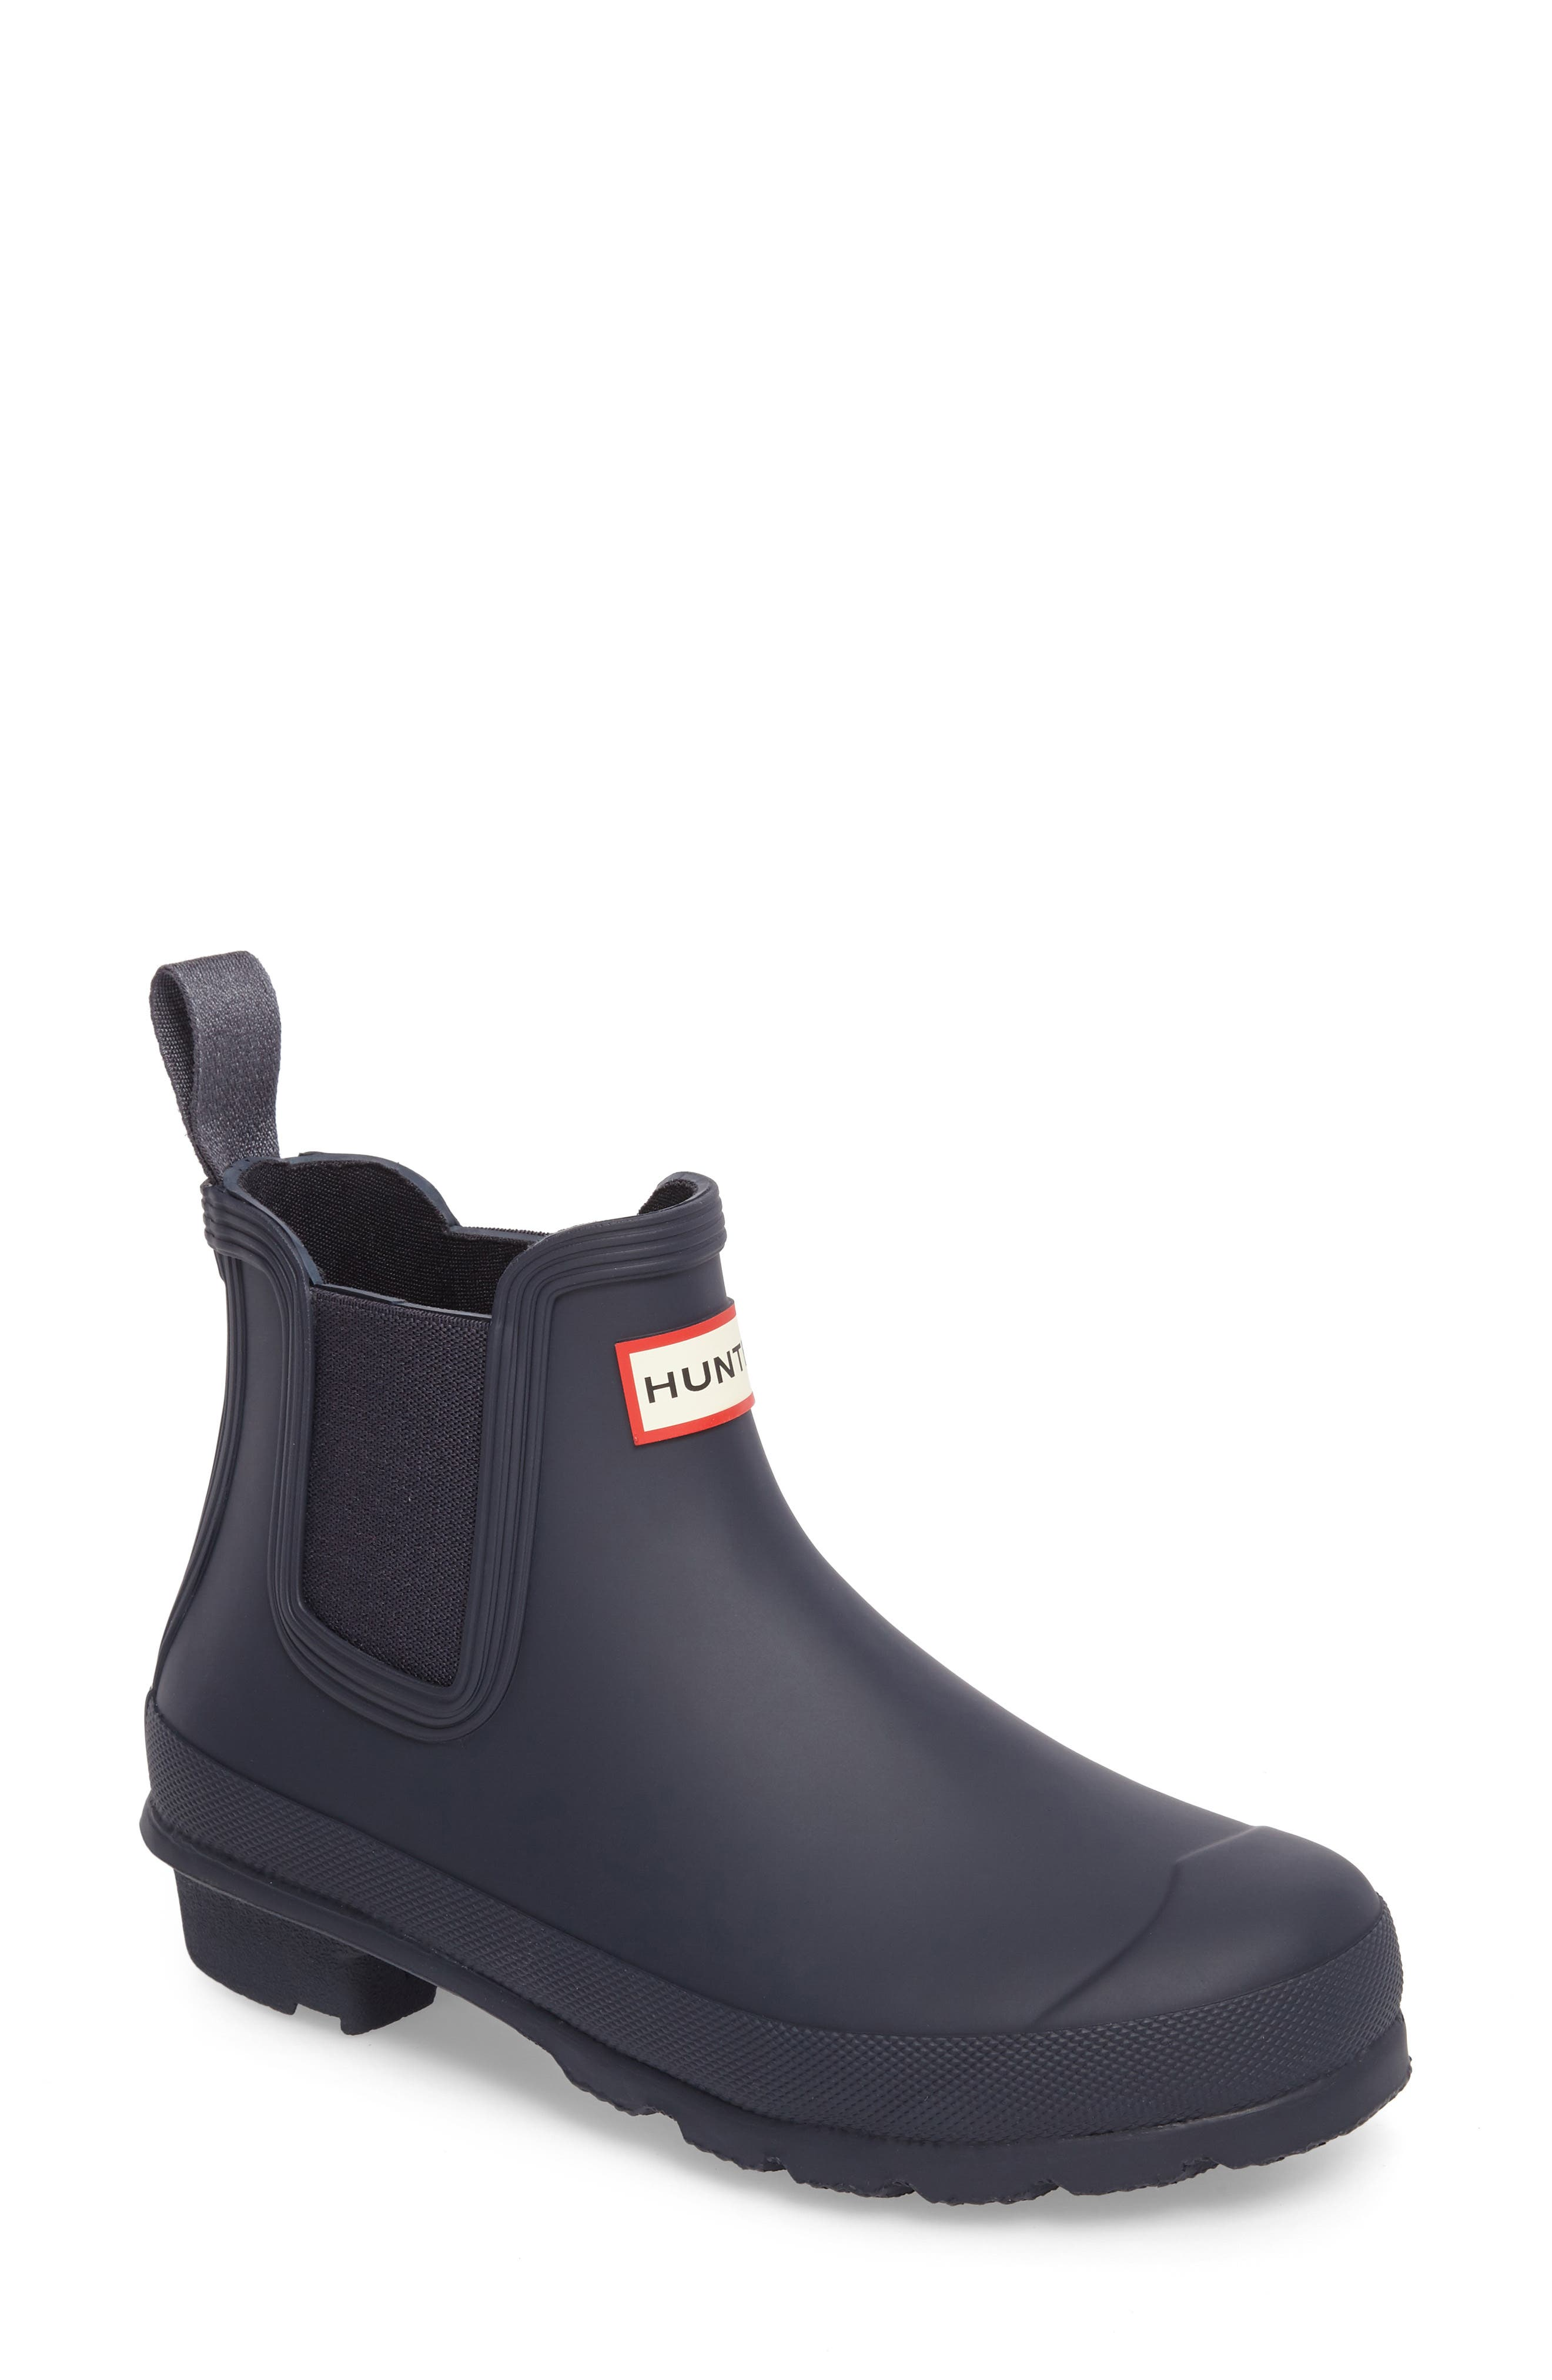 To acquire Rubber stylish boots canada pictures trends